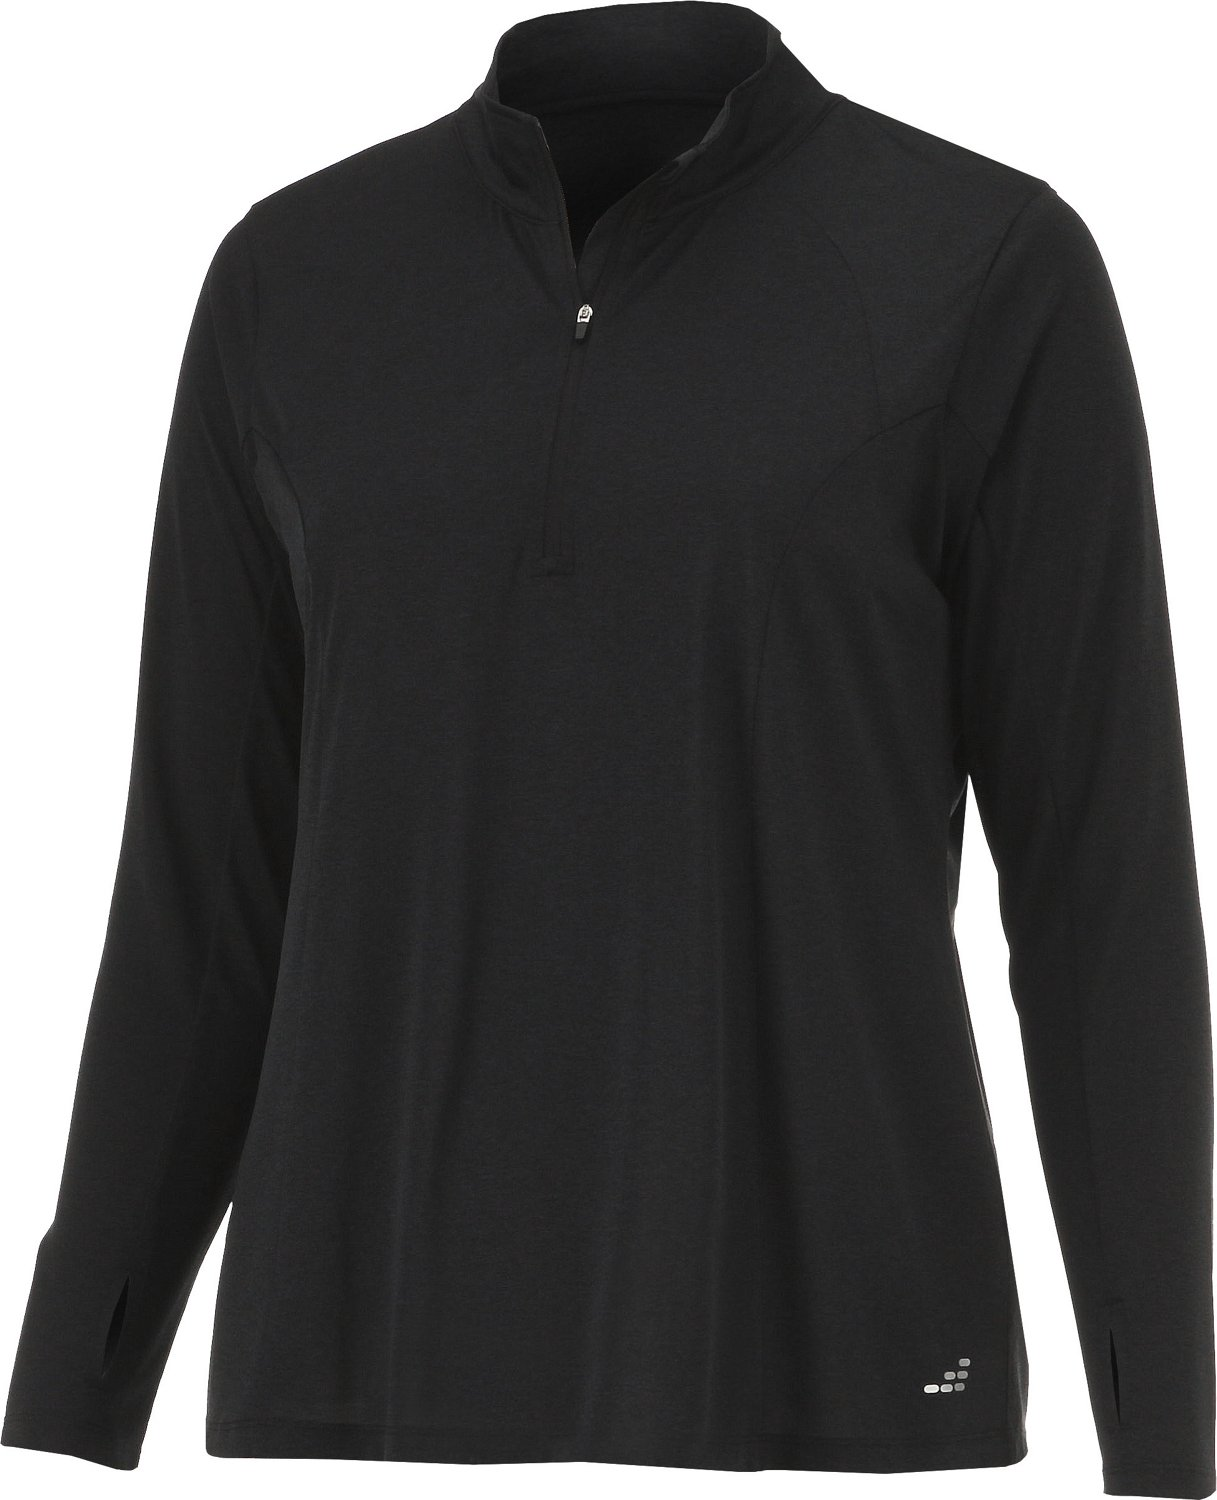 BCG Women's Turbo Plus Size 1/4 Zip Pullover - view number 1